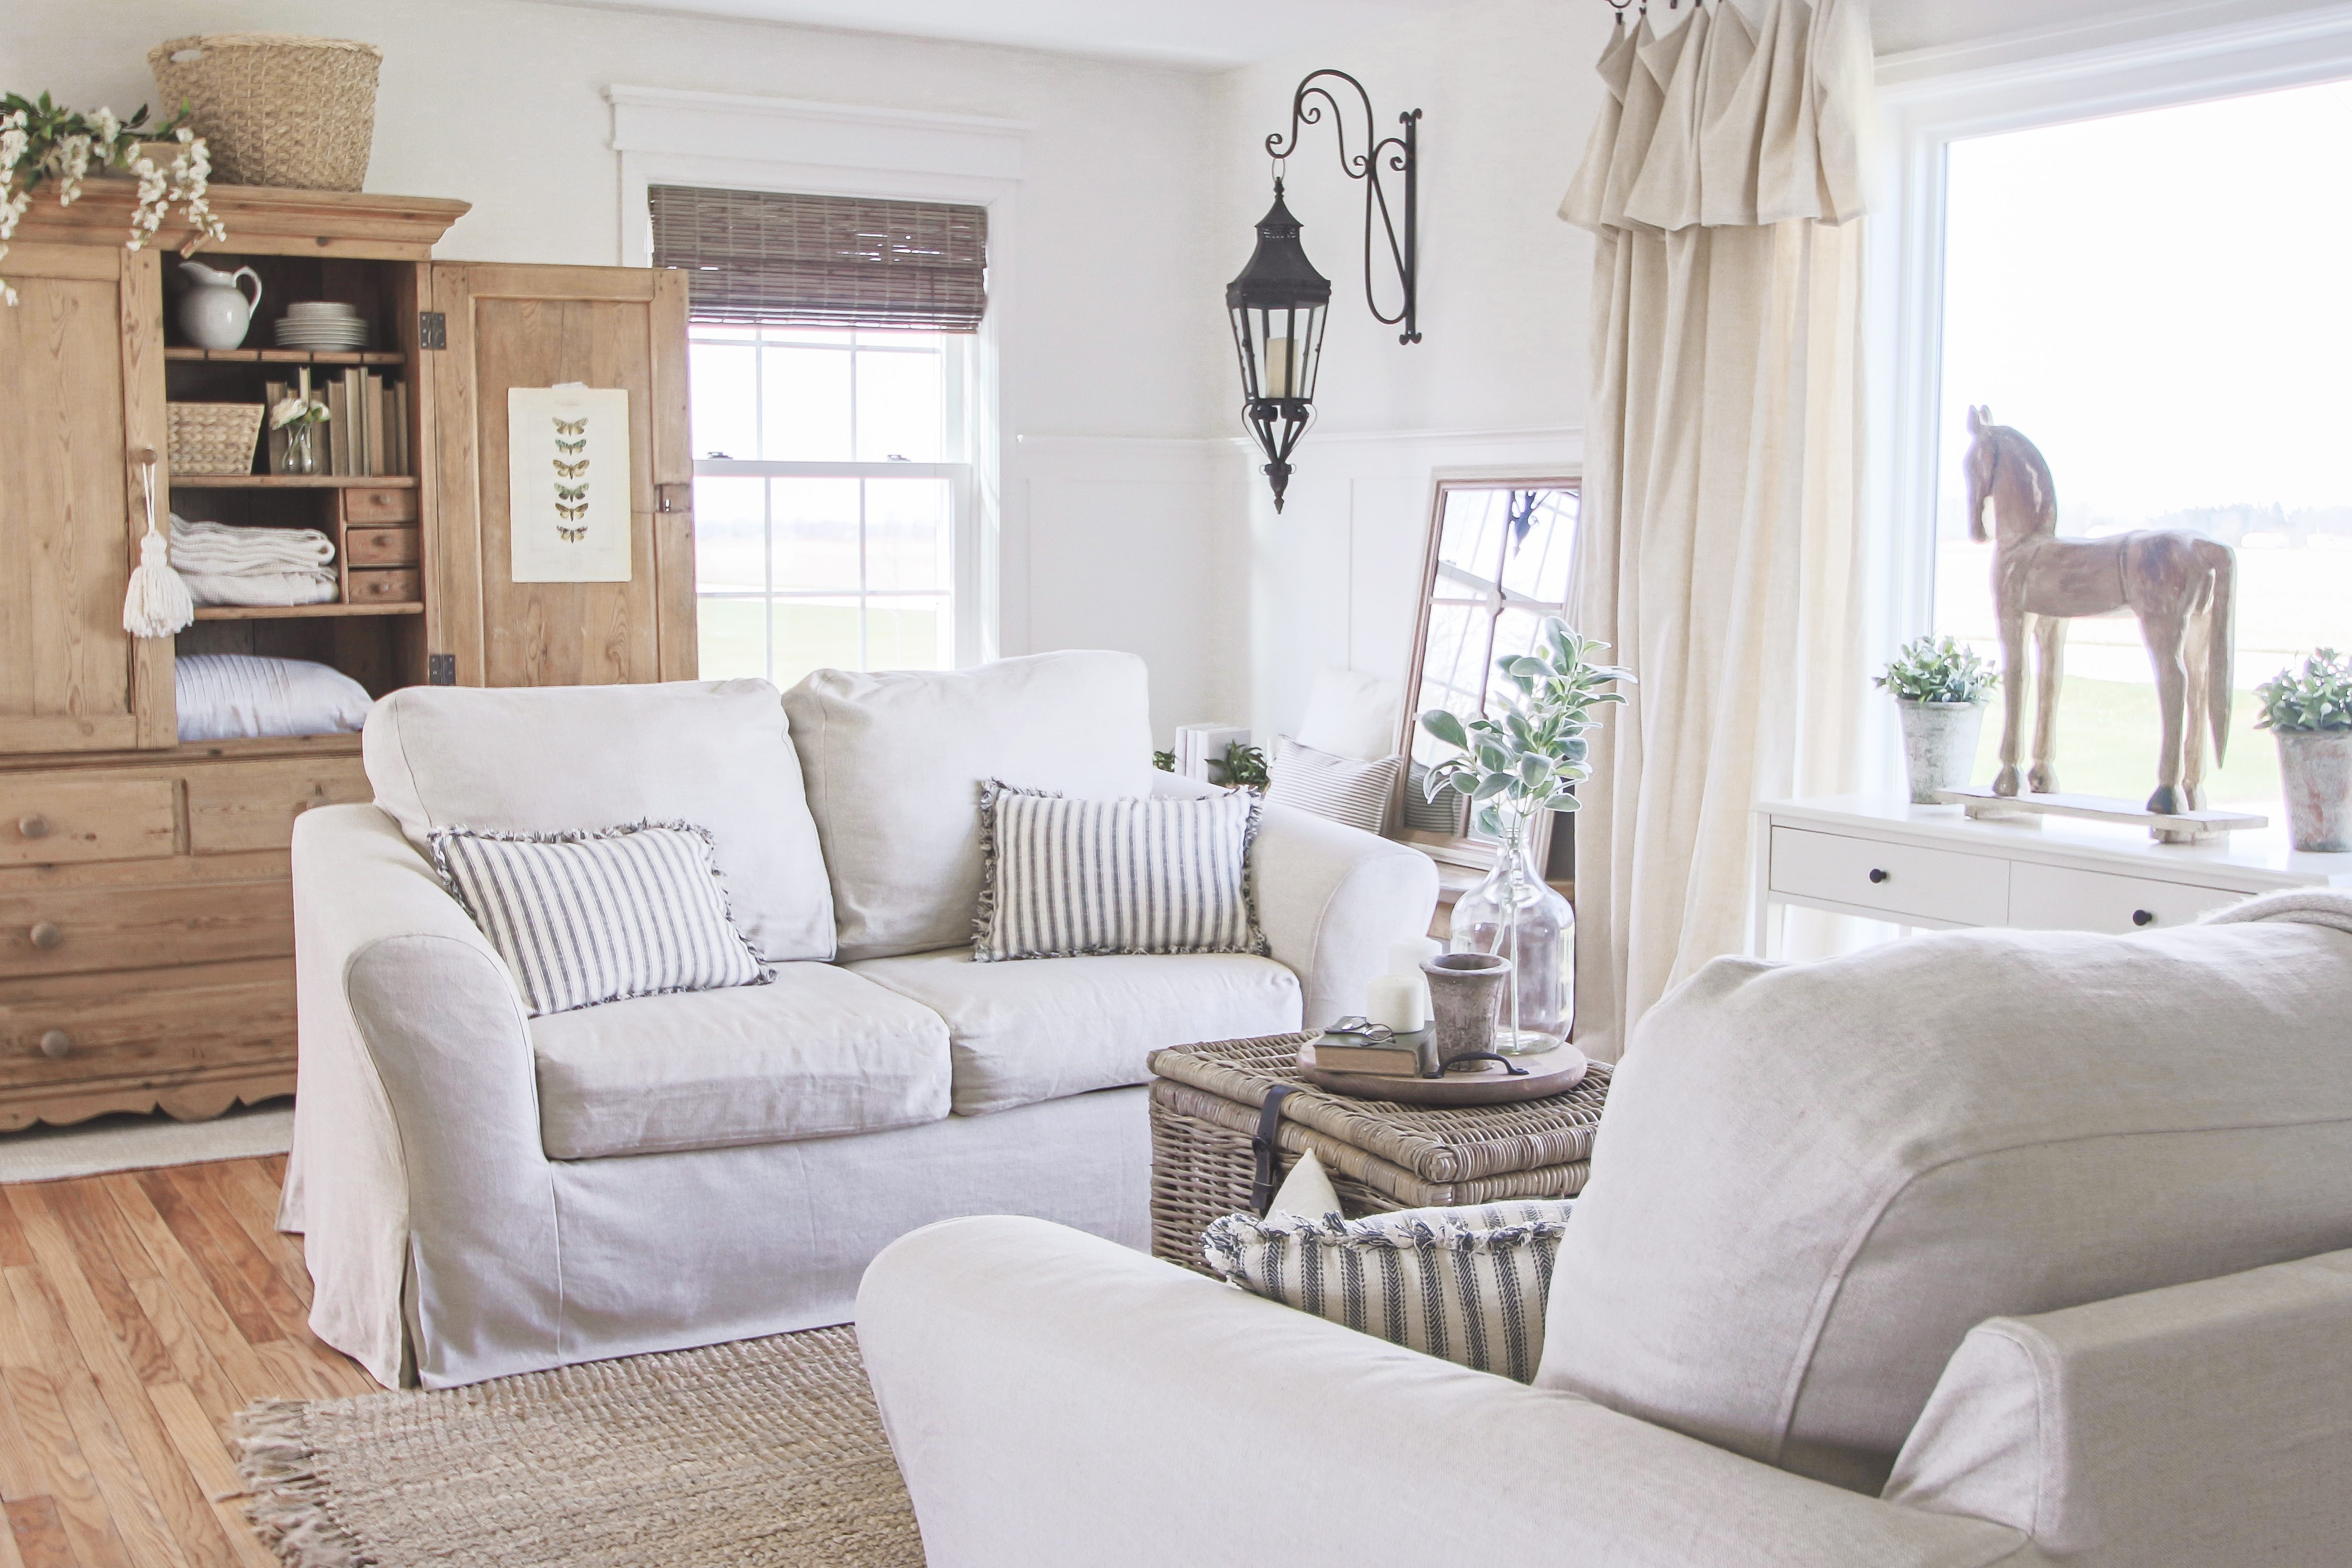 Slipcovers for Sofas with Attached Cushions - can it be done?